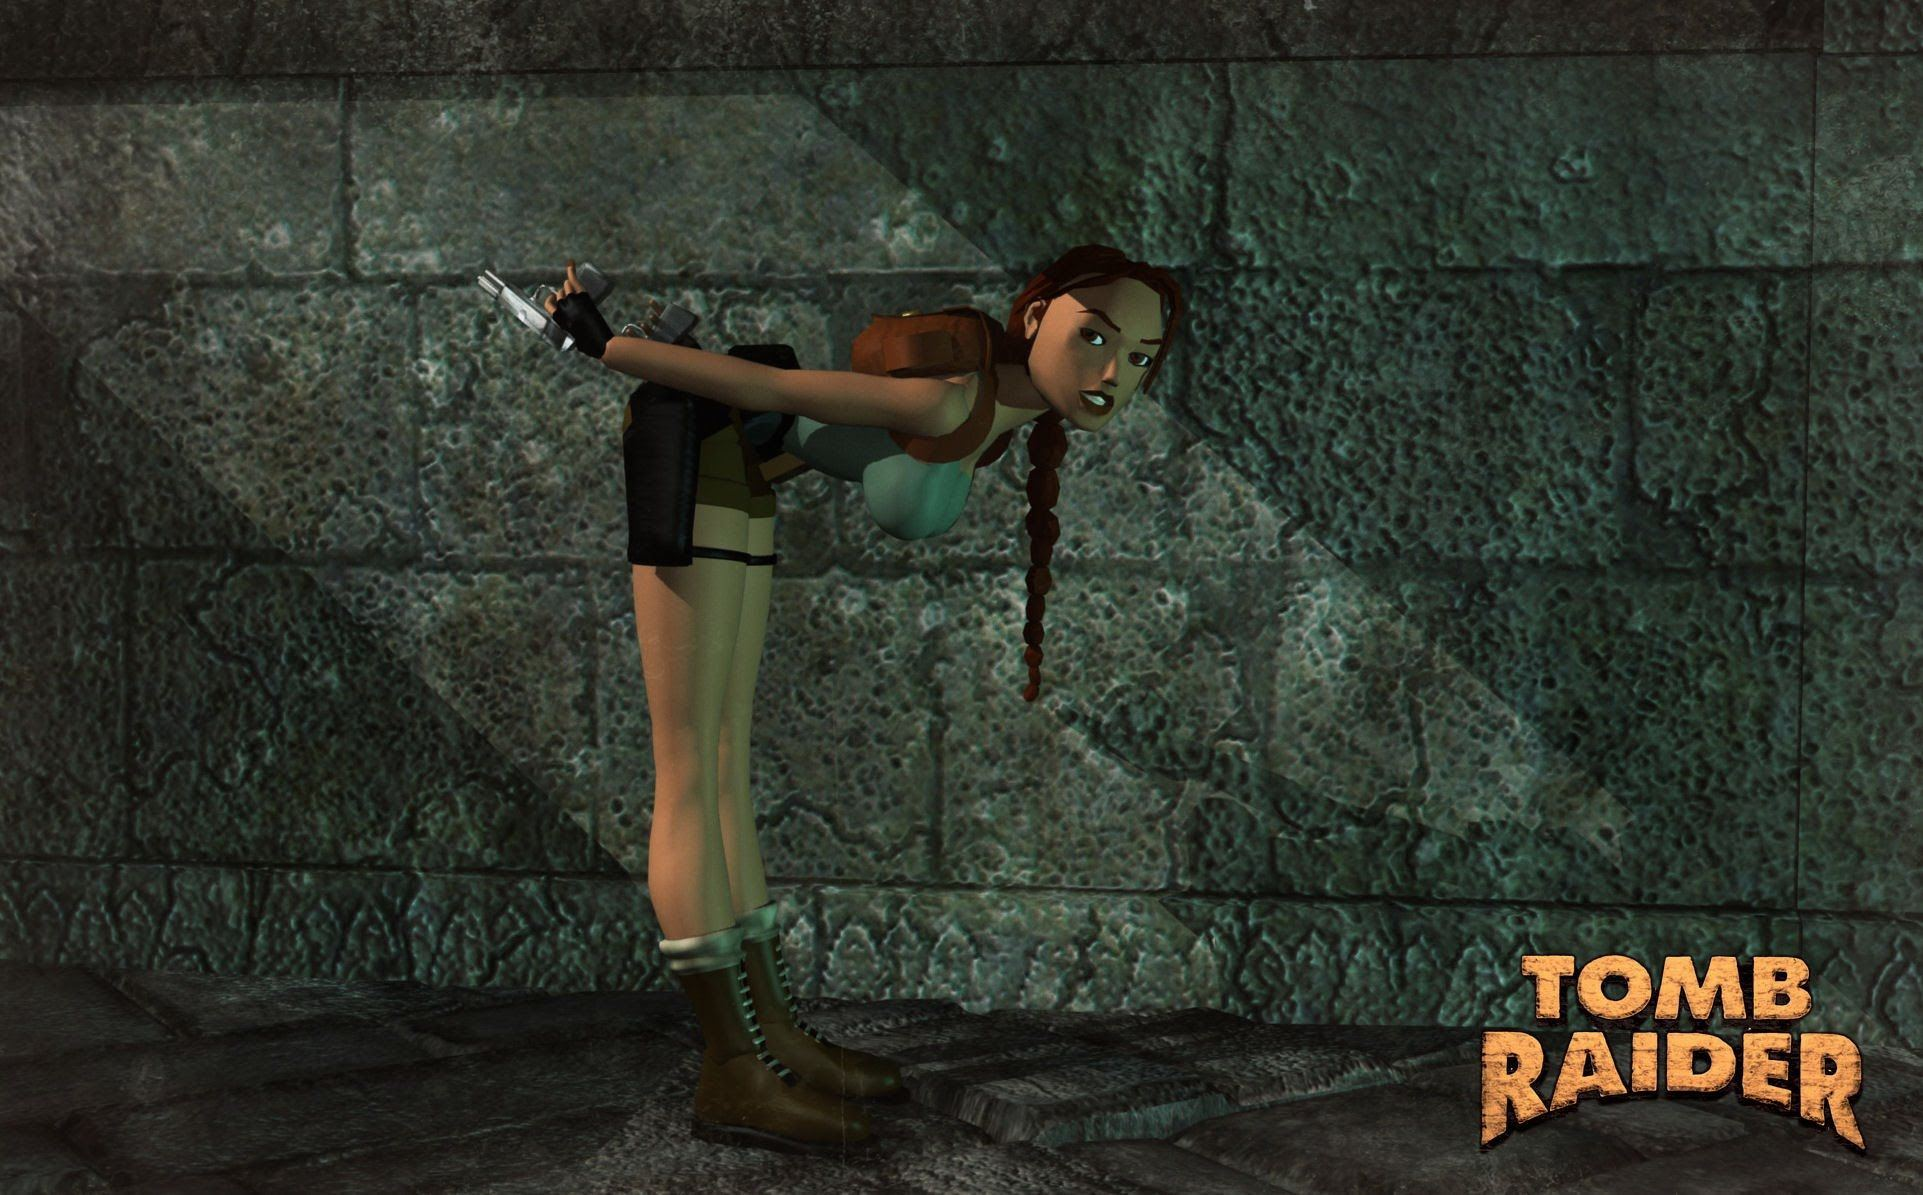 Tomb raider nudity fucked gallery